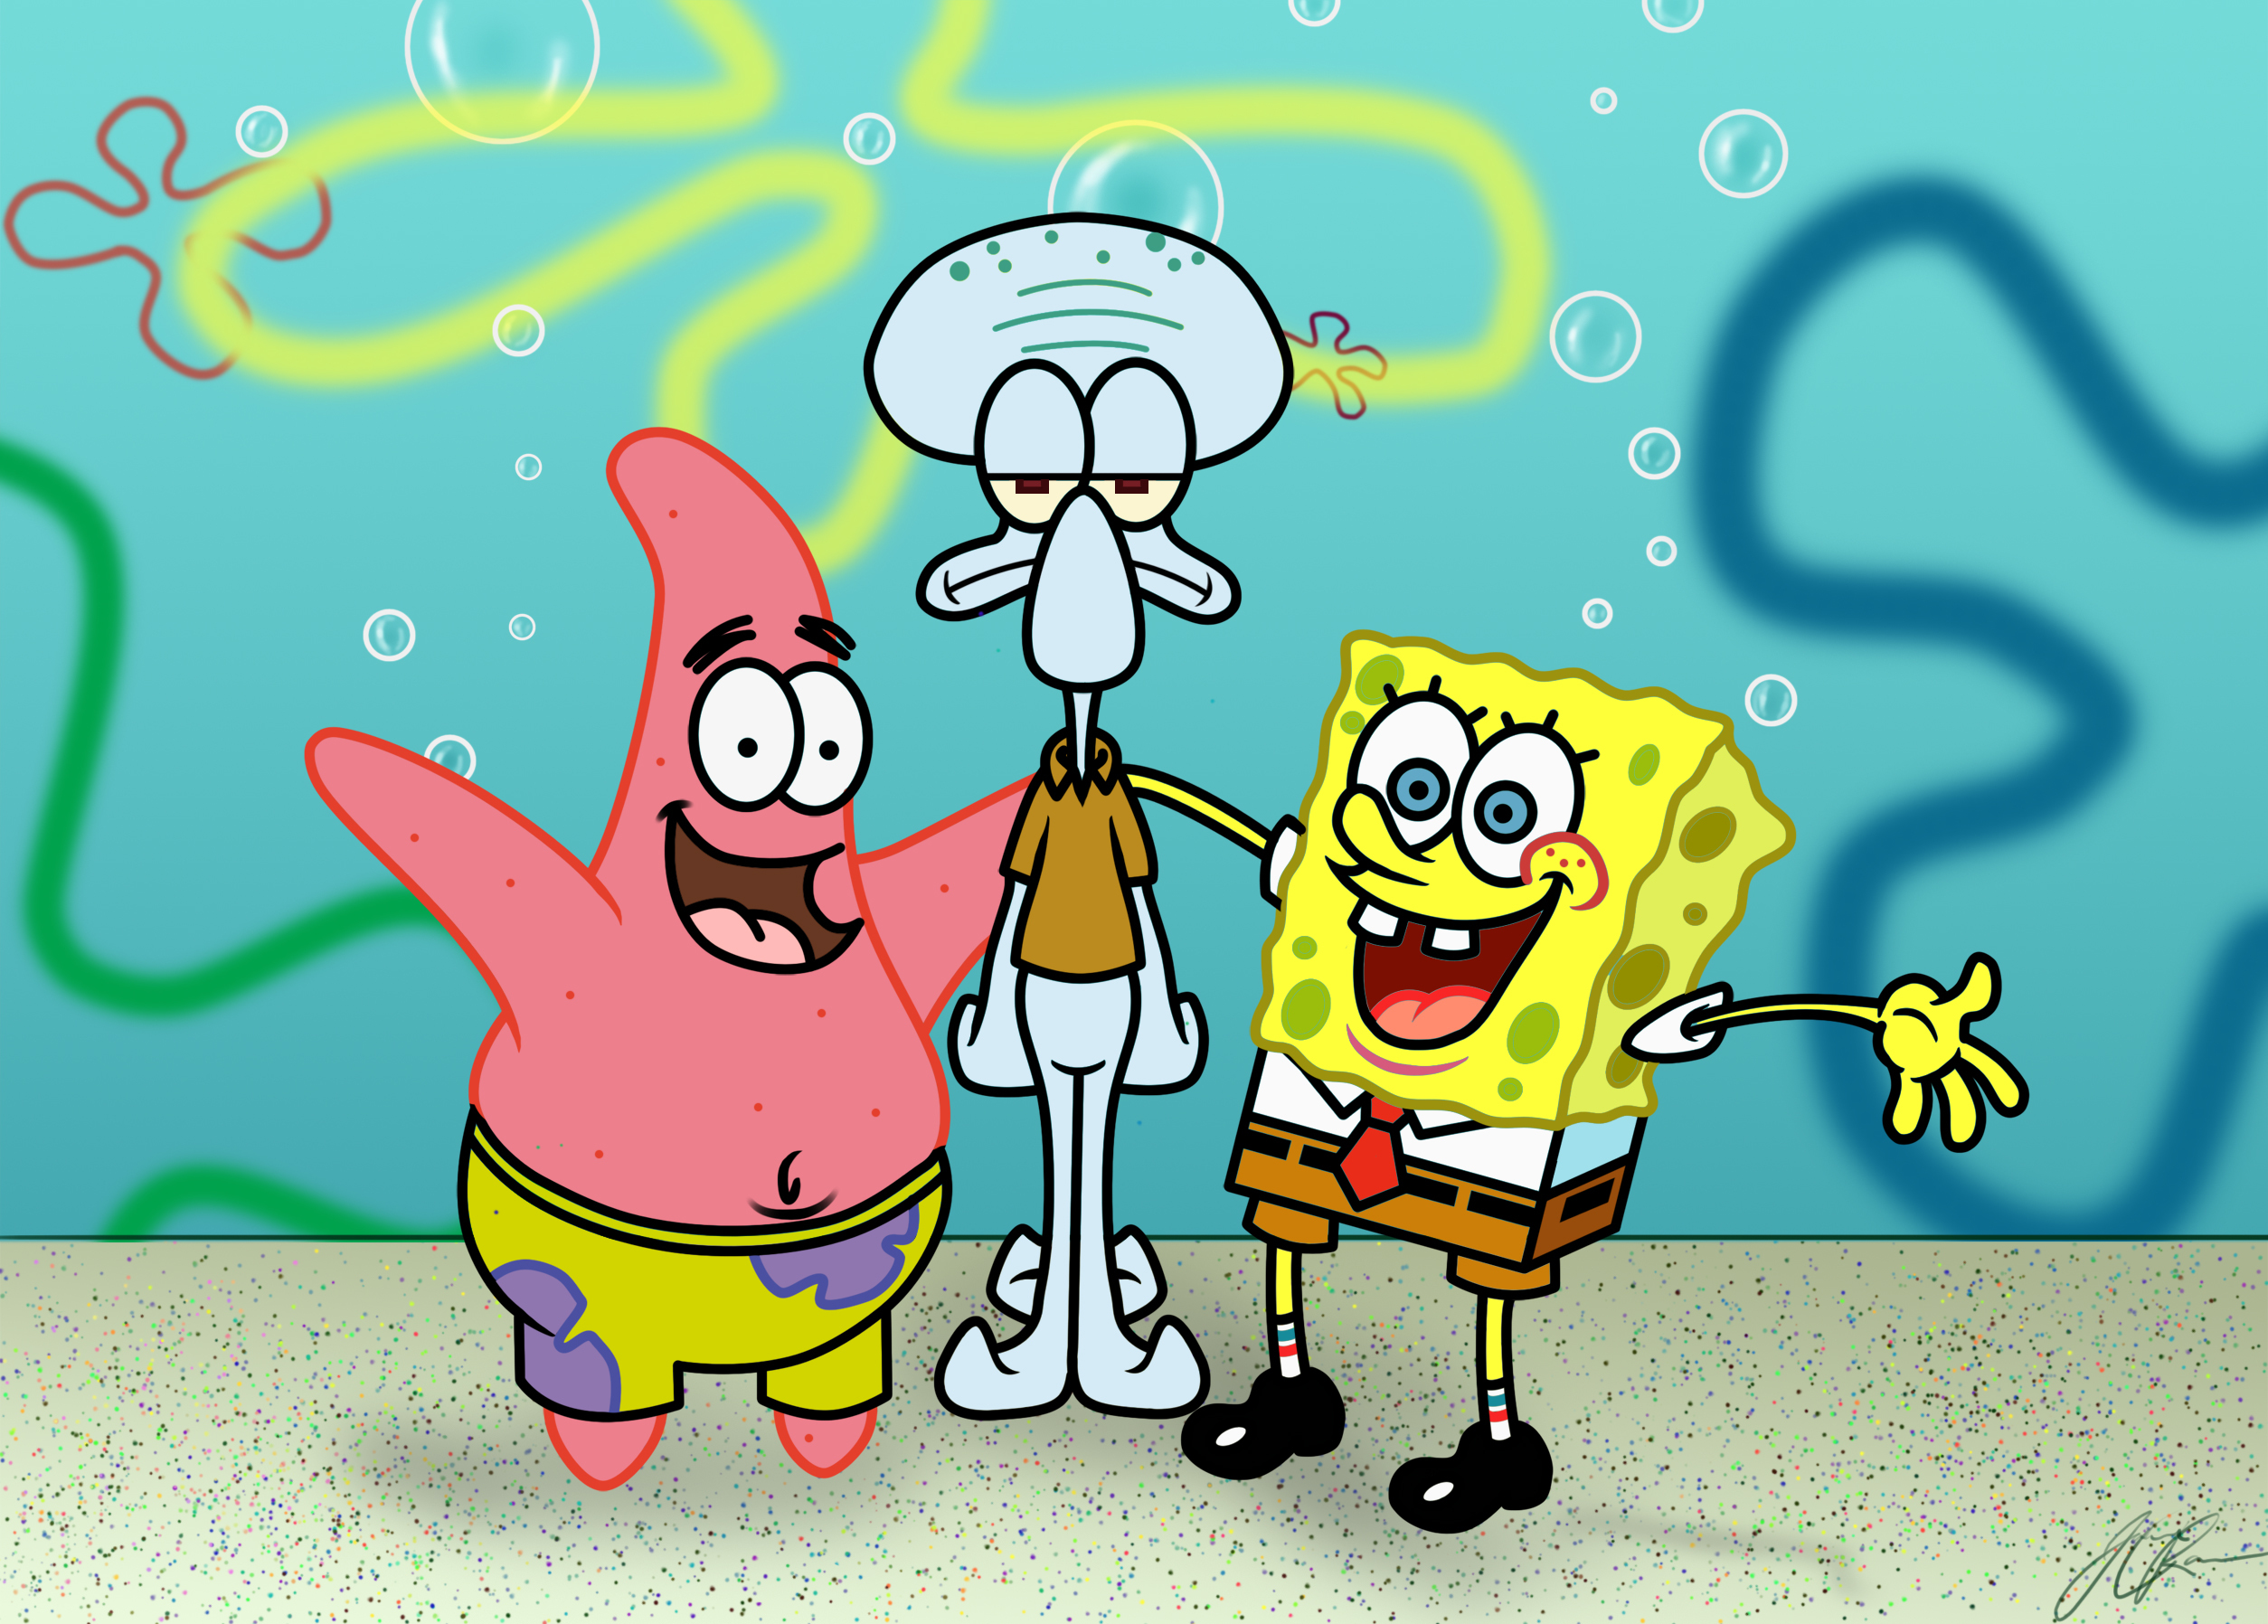 spongebob essay If you are from school or college and would like to try your hand at completing essays successfully, then learning more about spongebob essay writing is certainly a must.